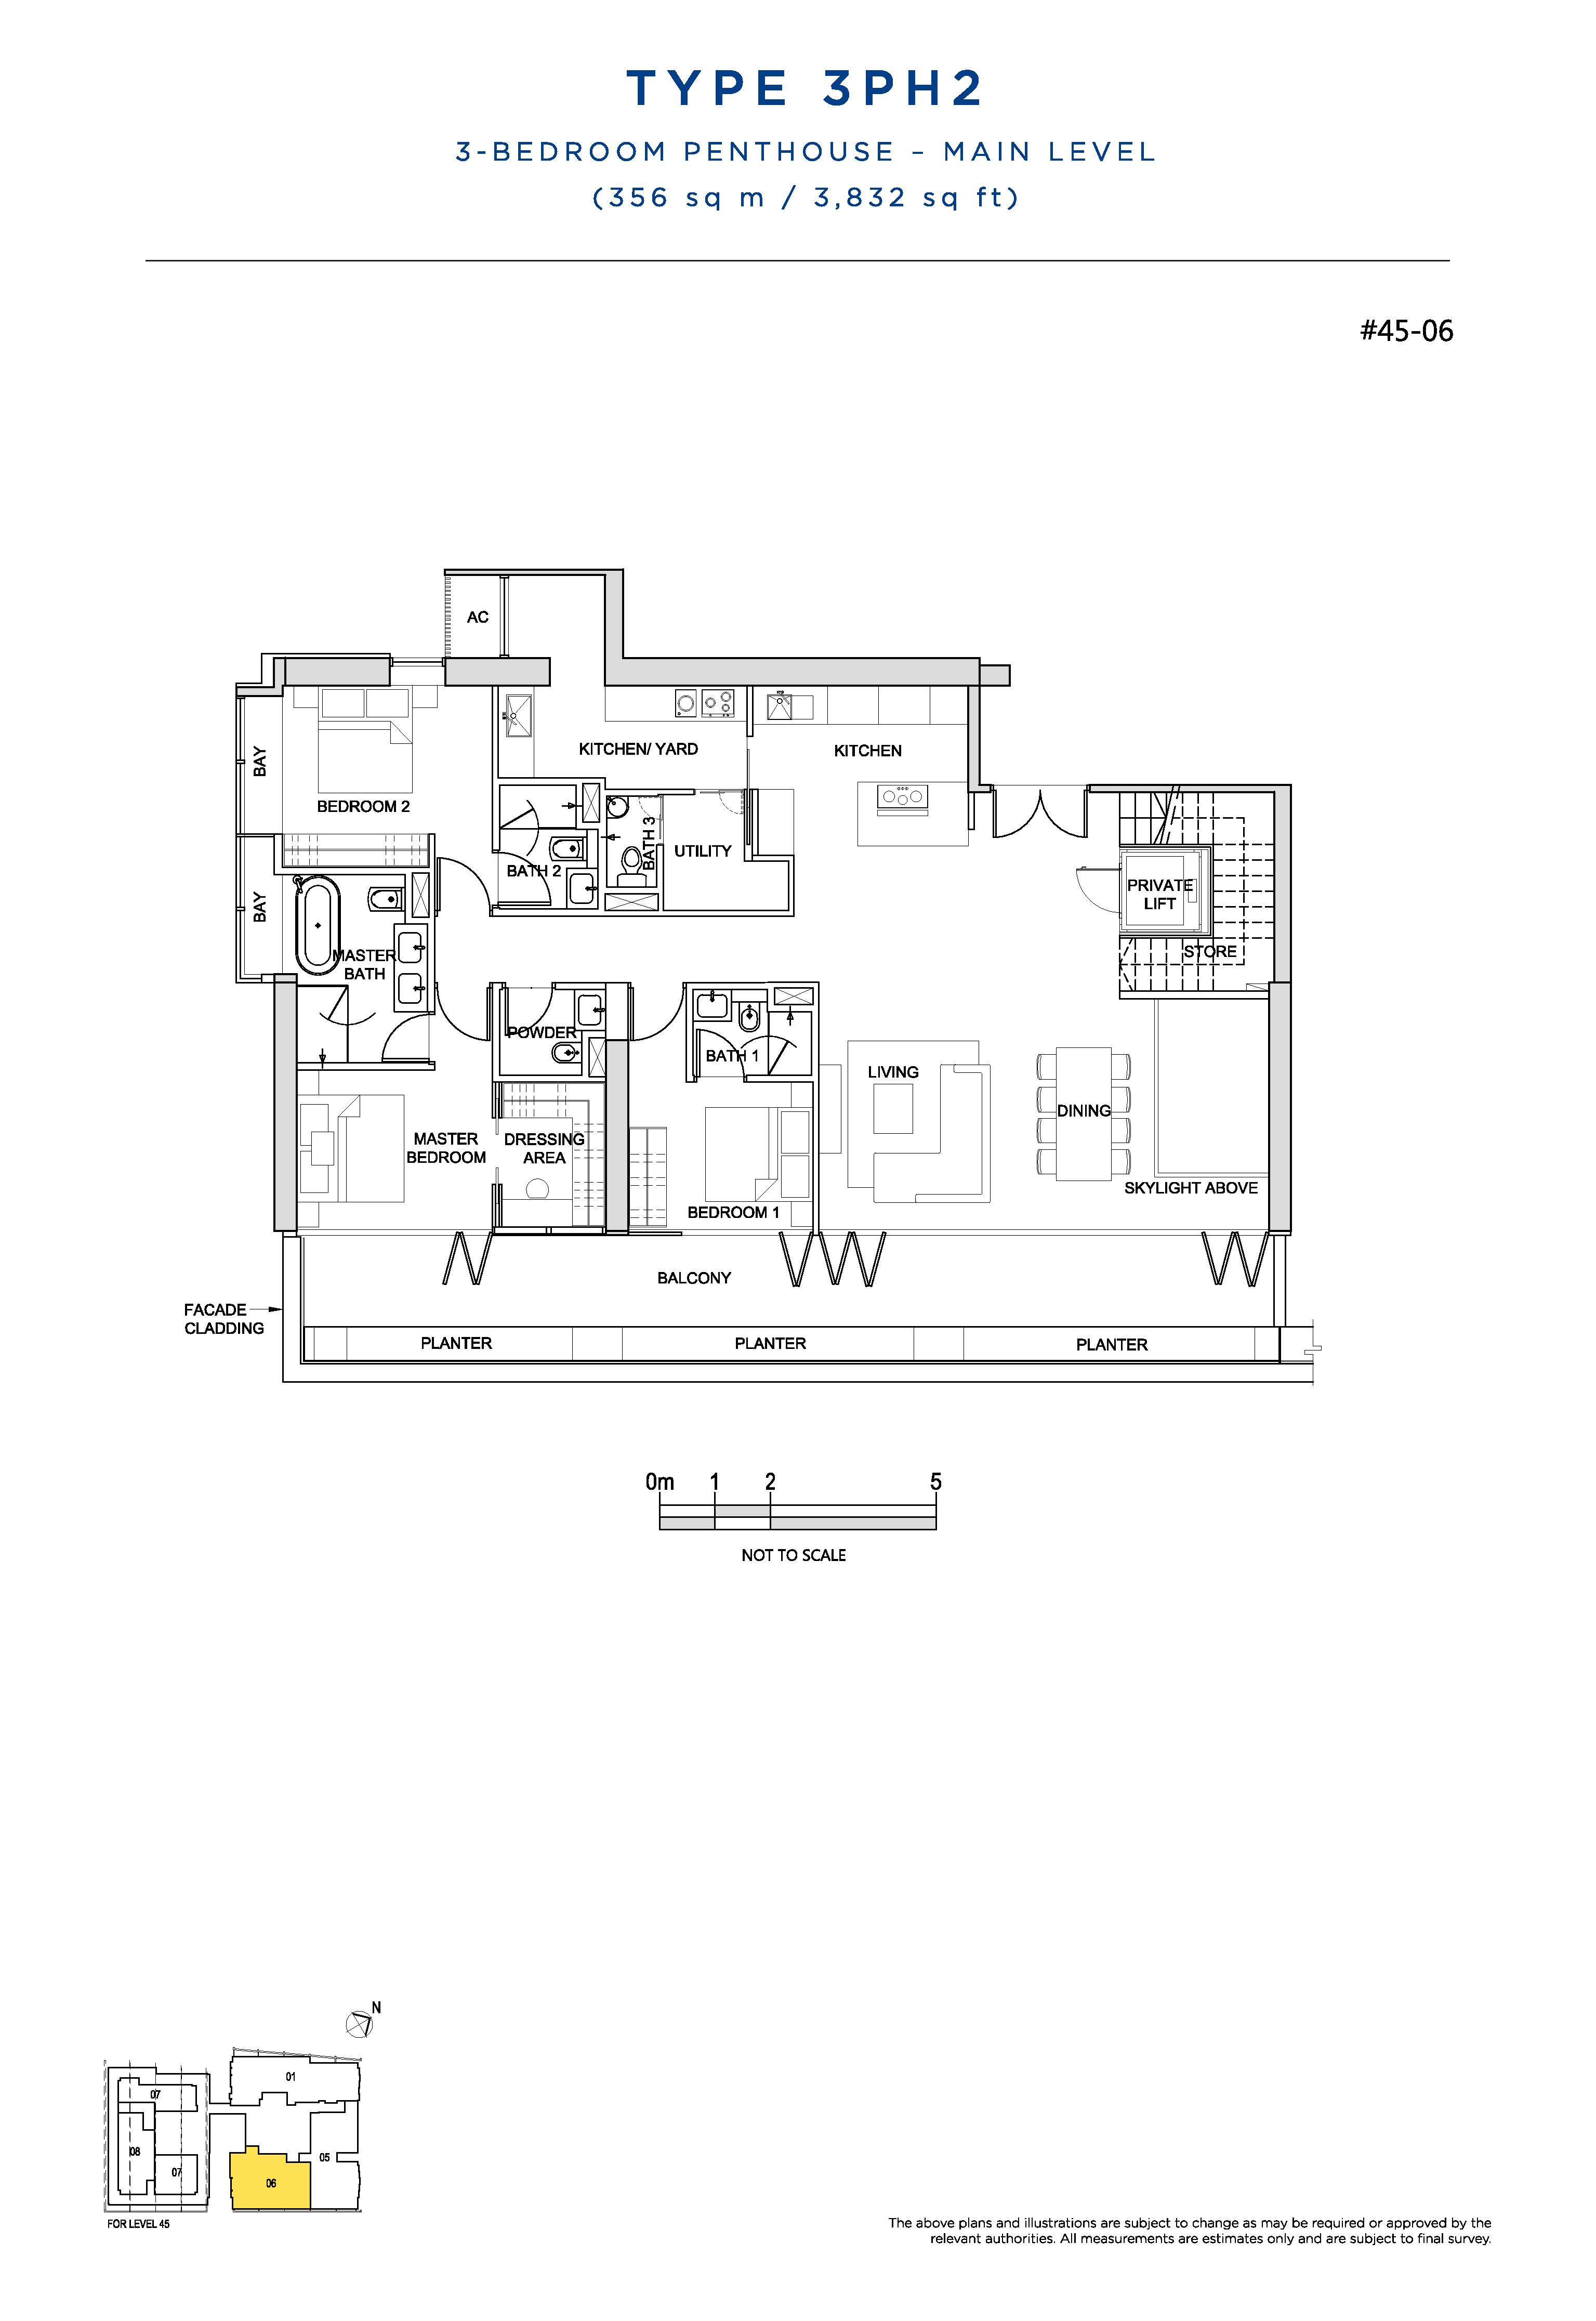 South Beach Residences 3 Bedroom Penthouse Floor Plans Type 3PH2(Main Level)